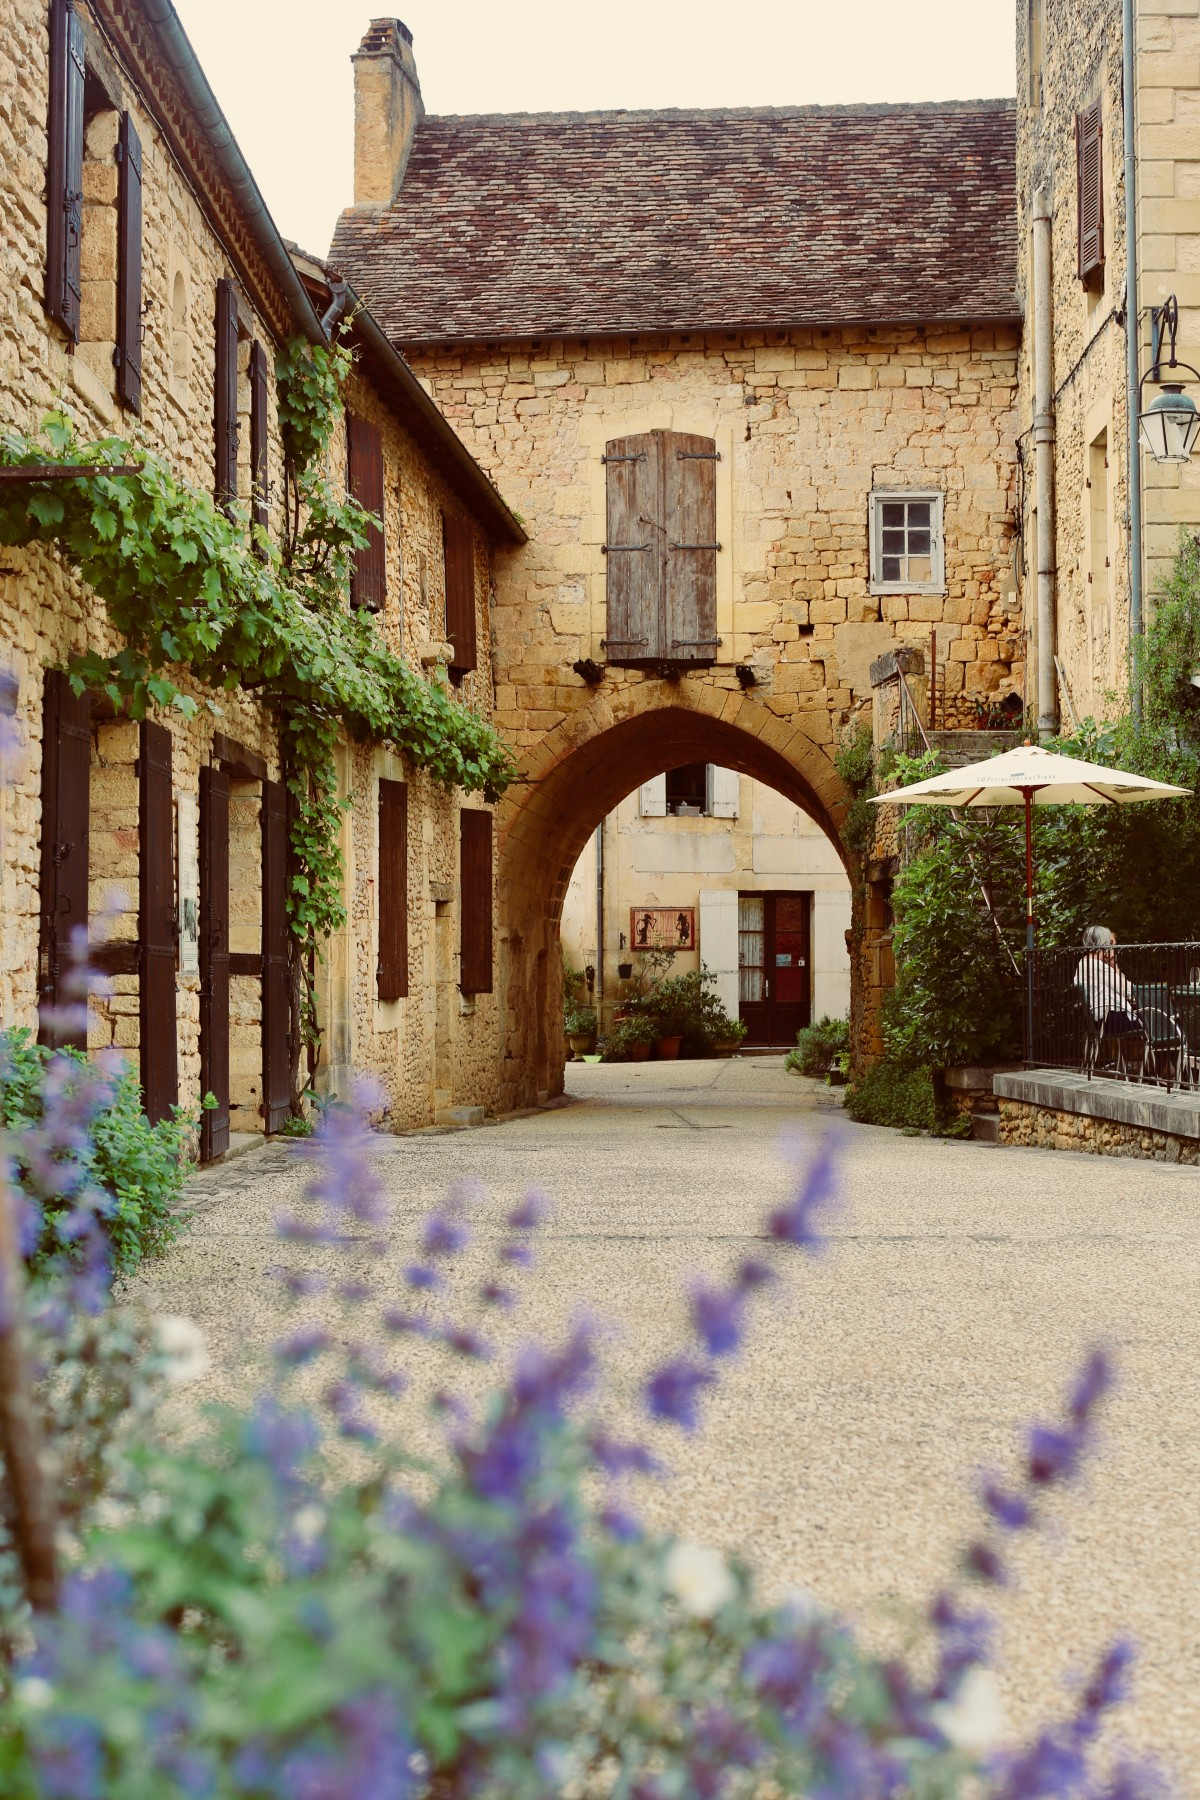 15 que faire weekend perigord blog mode voyage upupup.fr